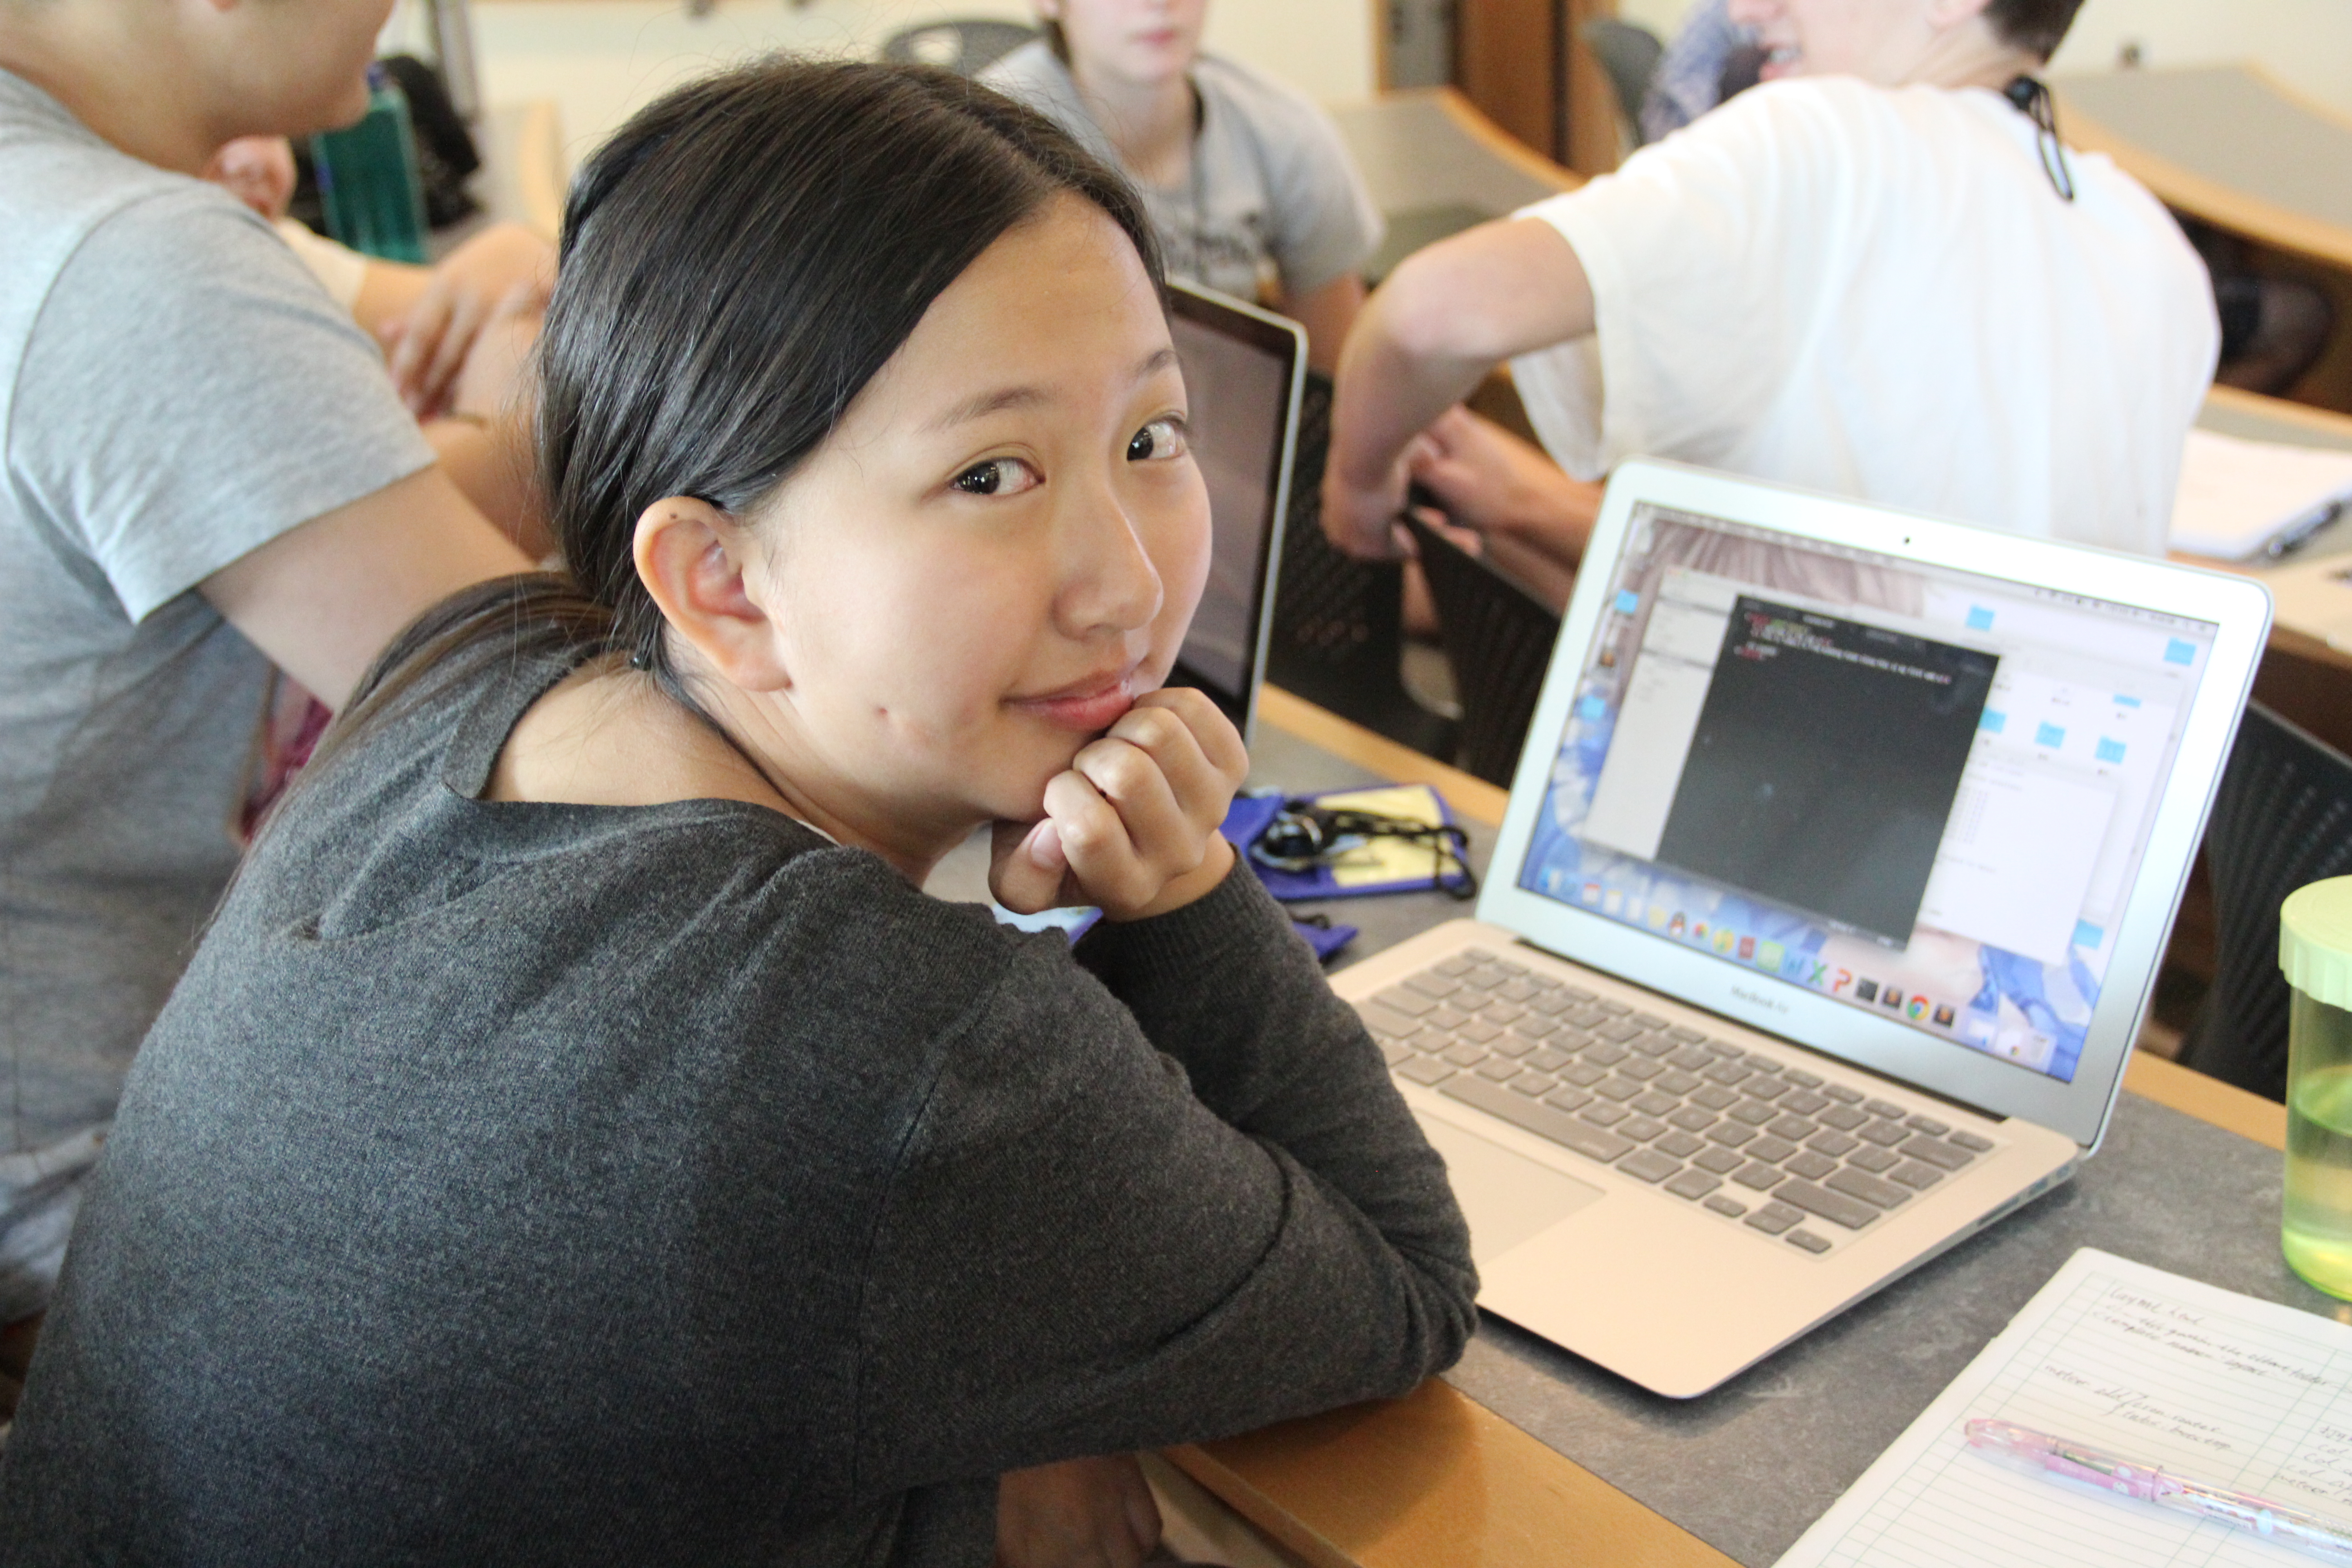 Summer Program - Web Design | Brandeis University Precollege Programs: App Design